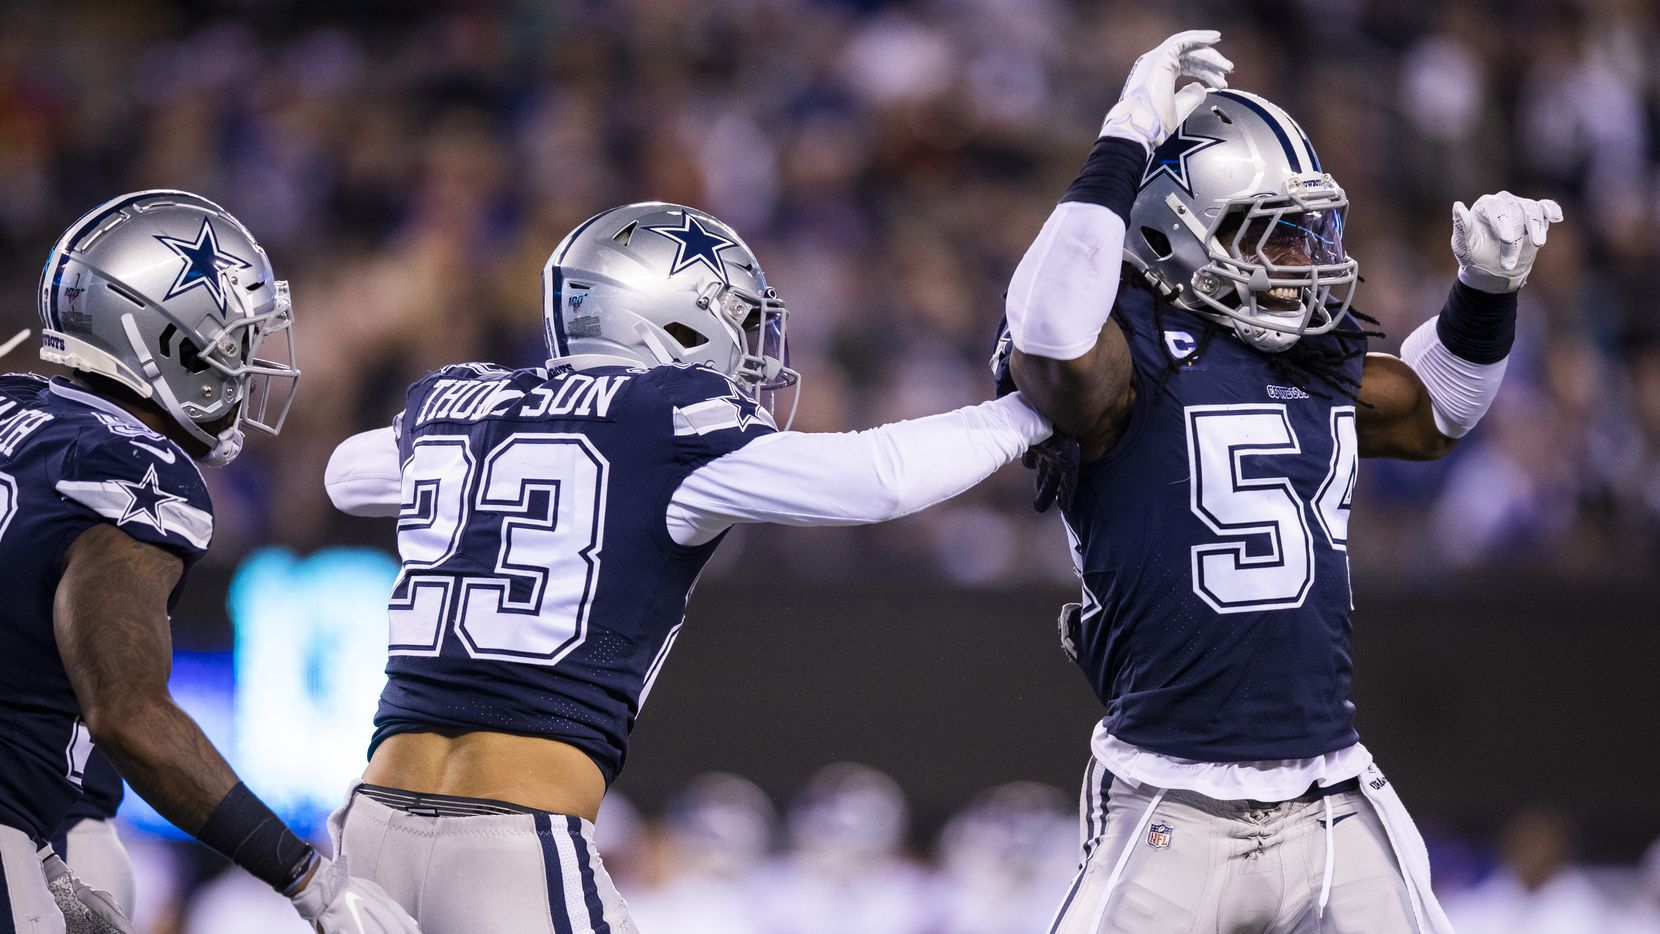 Dallas Cowboys middle linebacker Jaylon Smith (54) and defensive back Darian Thompson (23) celebrate a play during the second quarter of an NFL game between the Dallas Cowboys and the New York Giants on Monday, November 4, 2019 at MetLife Stadium in East Rutherford, New Jersey.